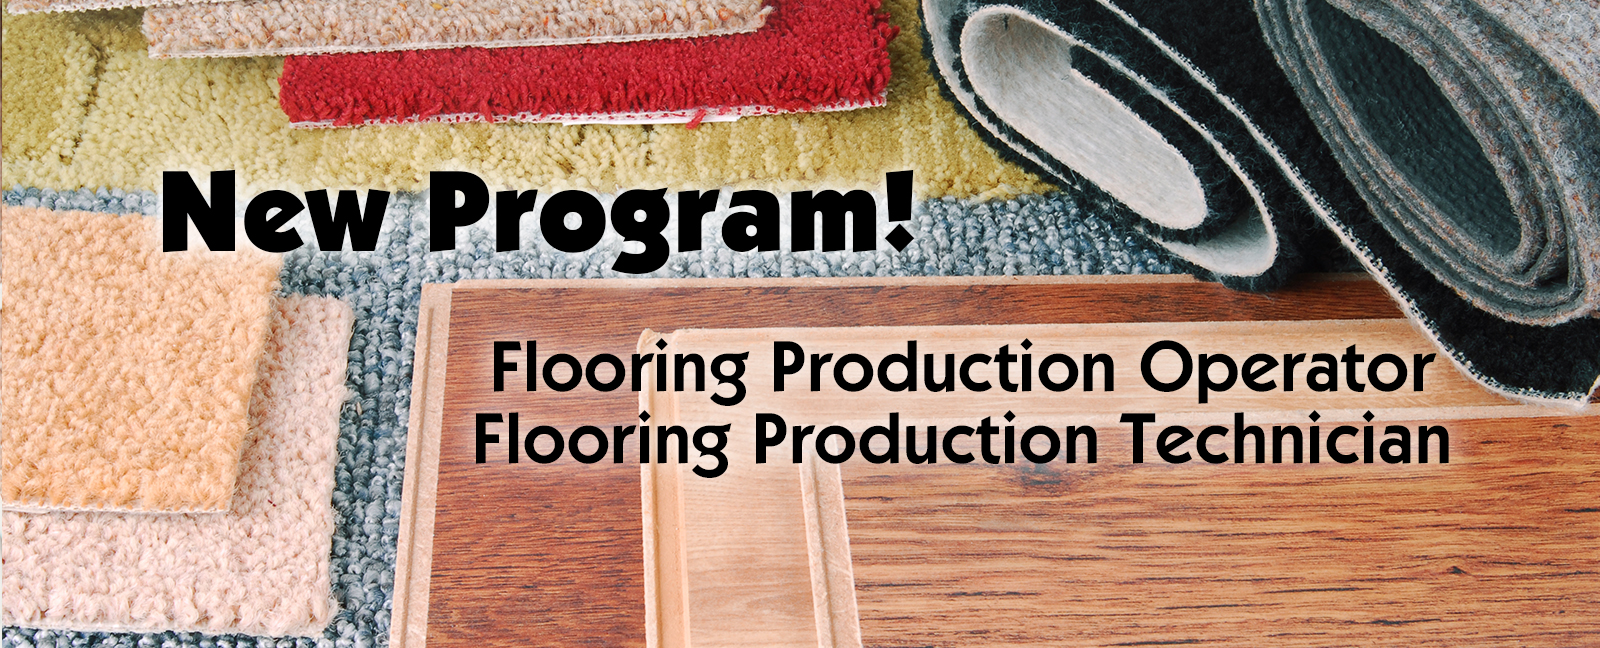 New Program! Flooring Production Operator and Flooring Production Technician